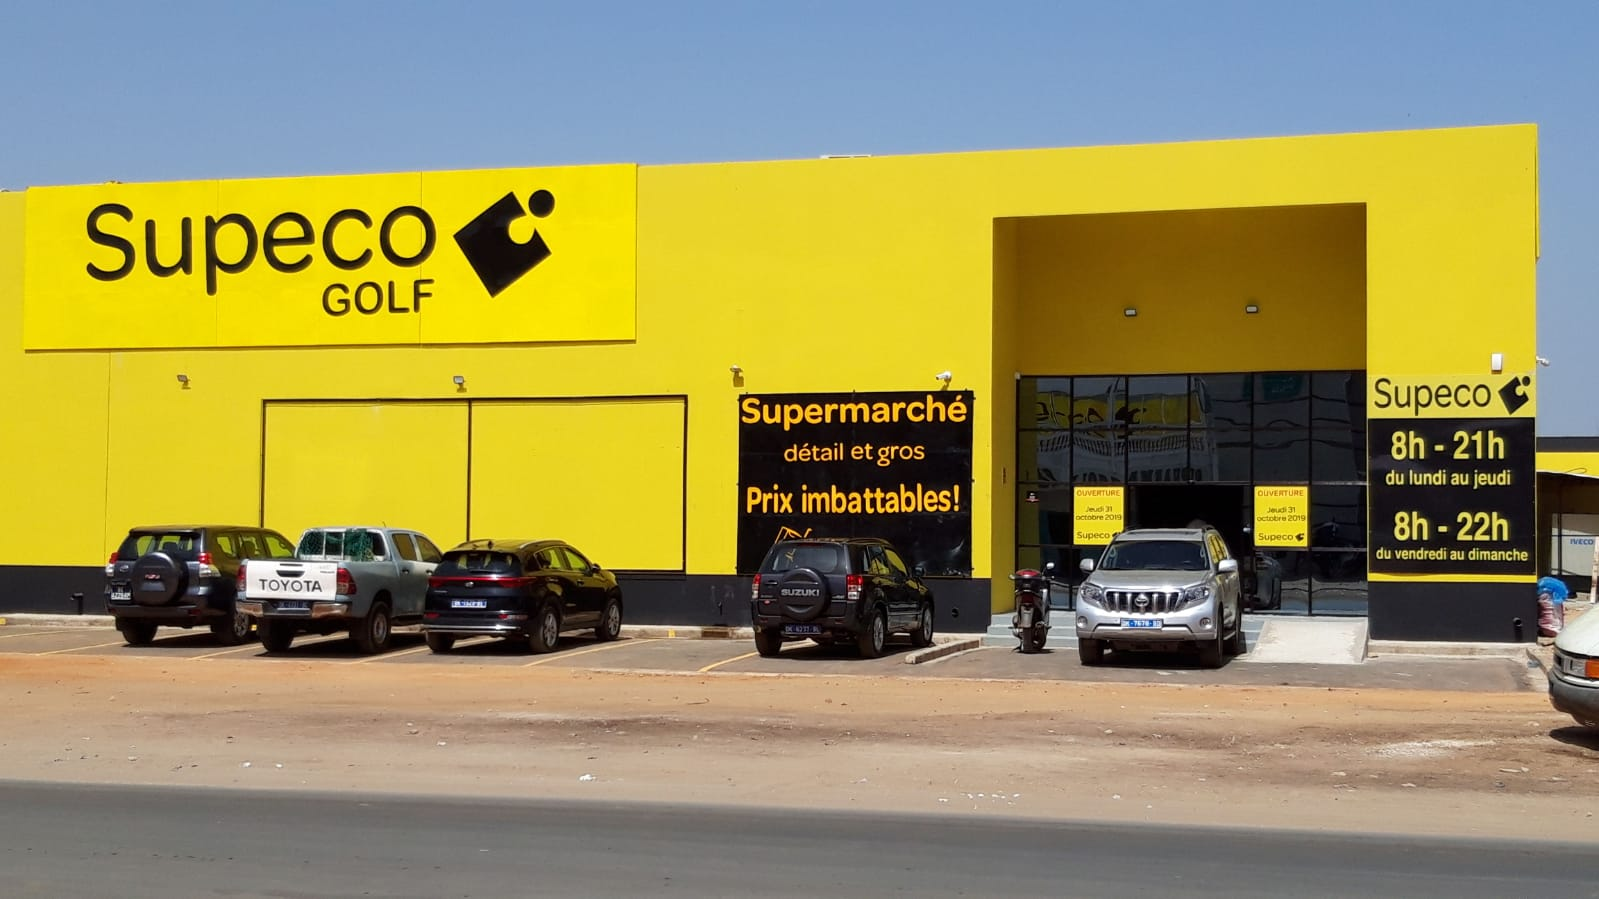 Inauguration de Supeco « Golf », Dakar